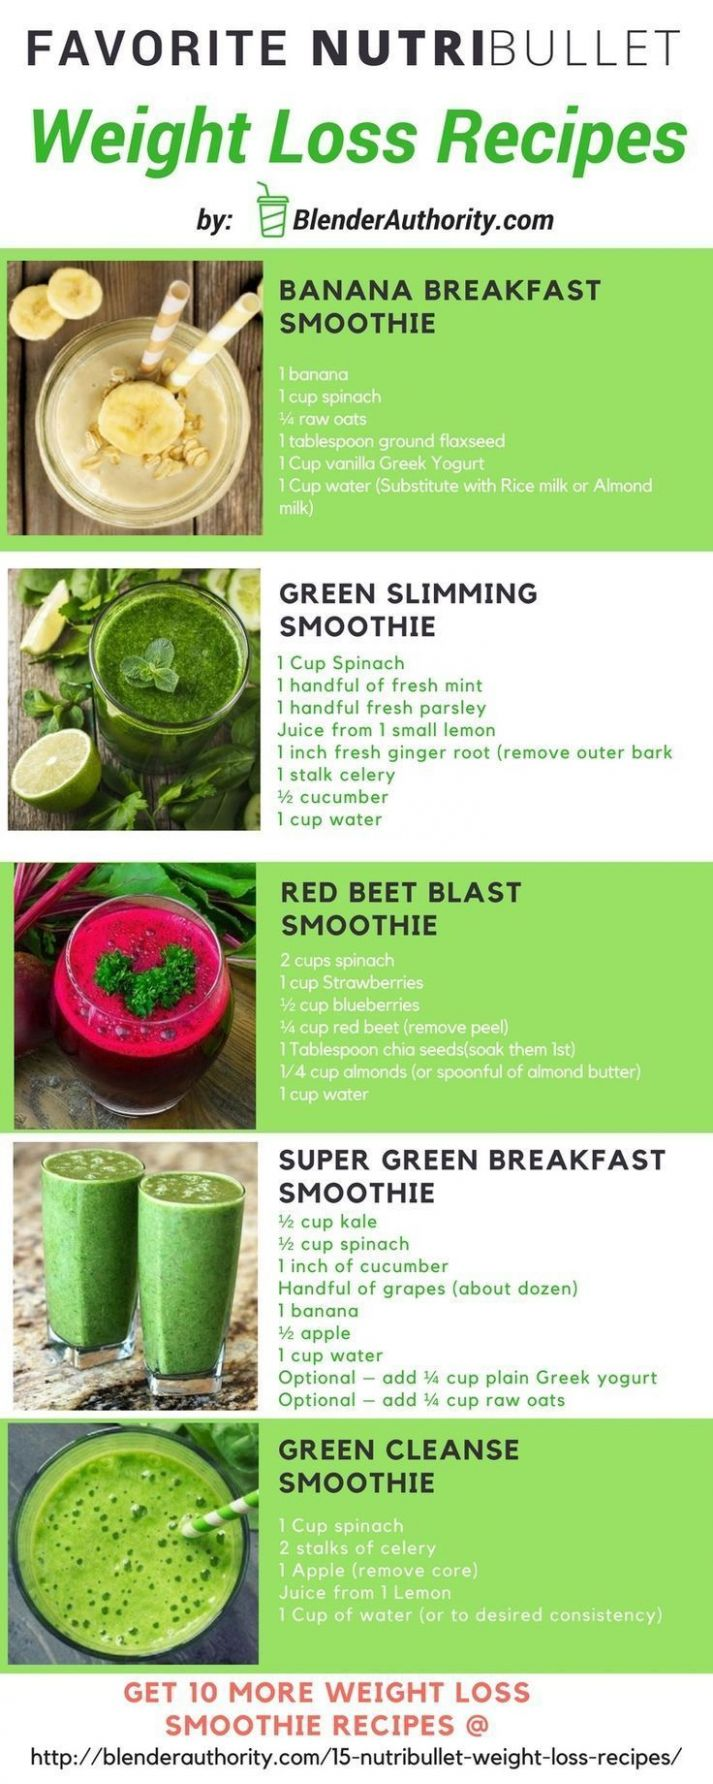 Pin auf Drinks - Smoothie Recipes For Weight Loss Breakfast